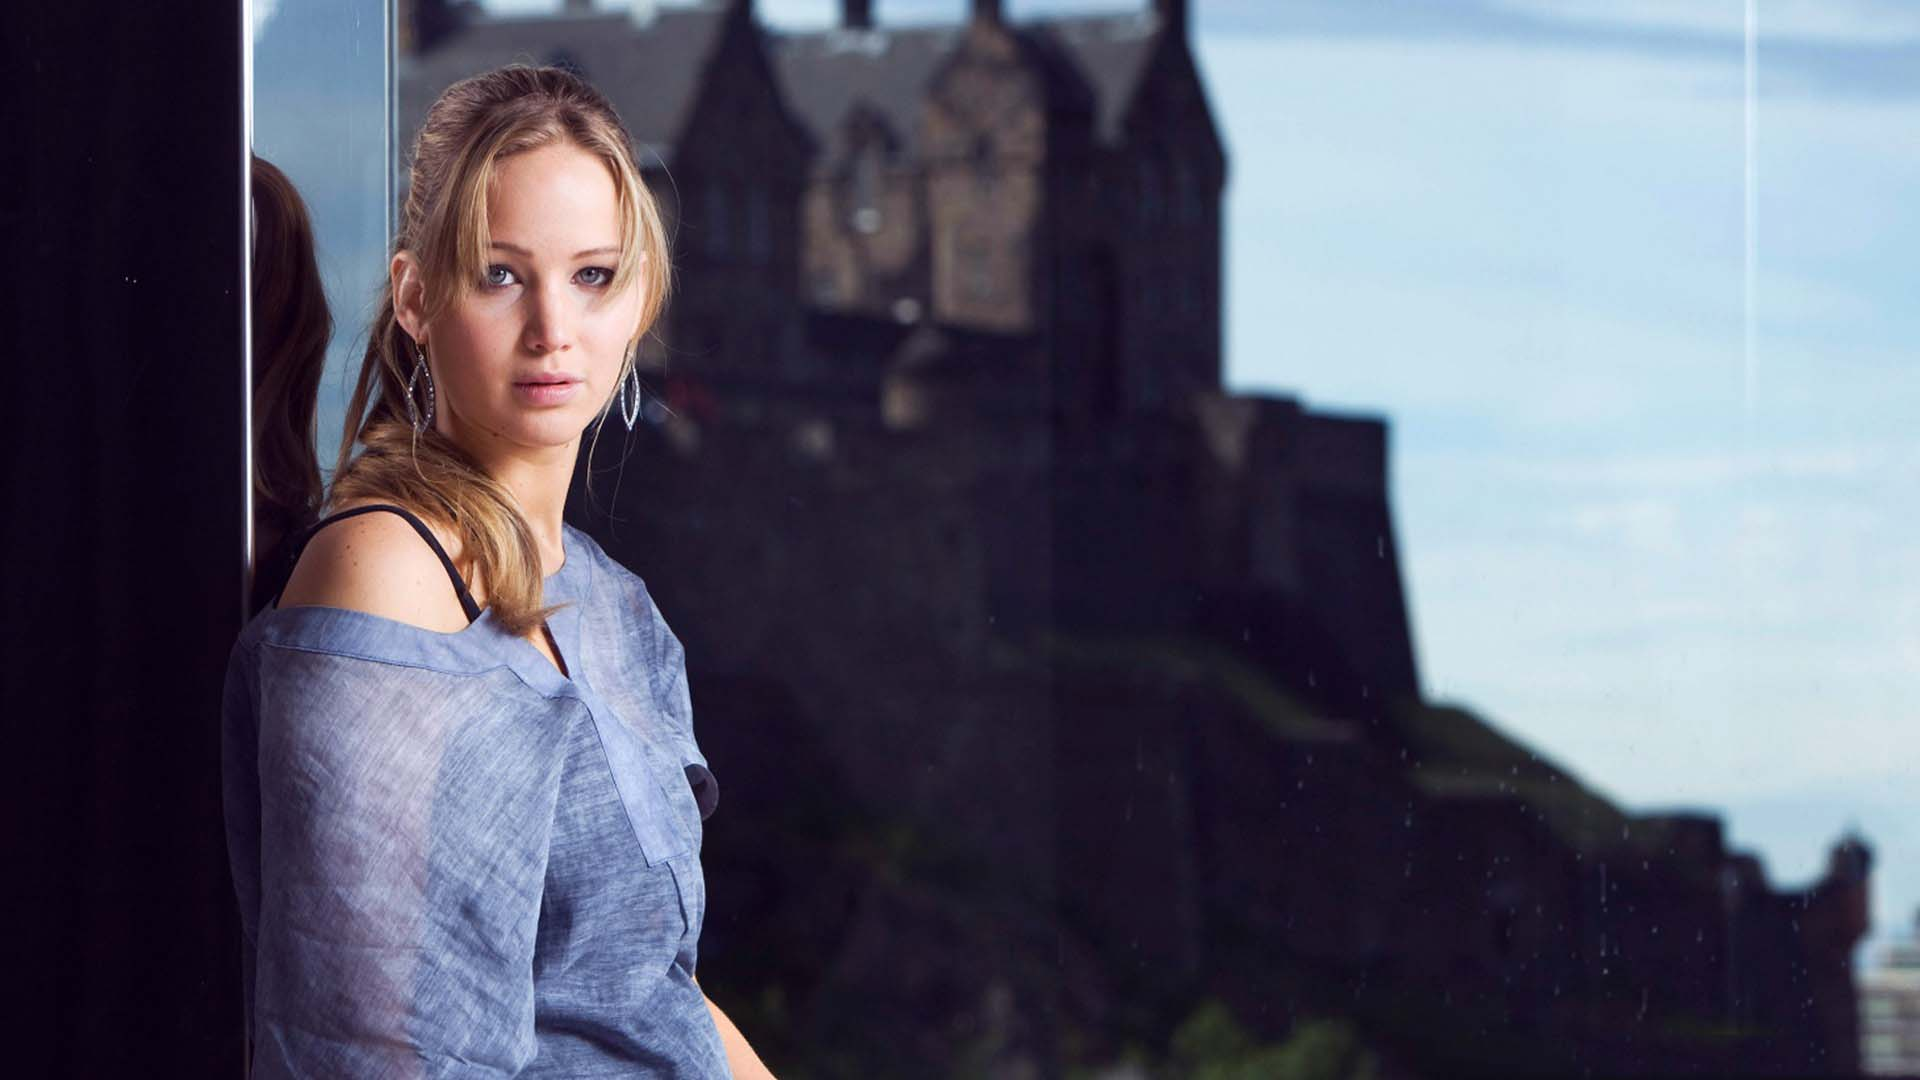 Free High Definition Mind Blowing Jennifer Lawrence Scenery Download